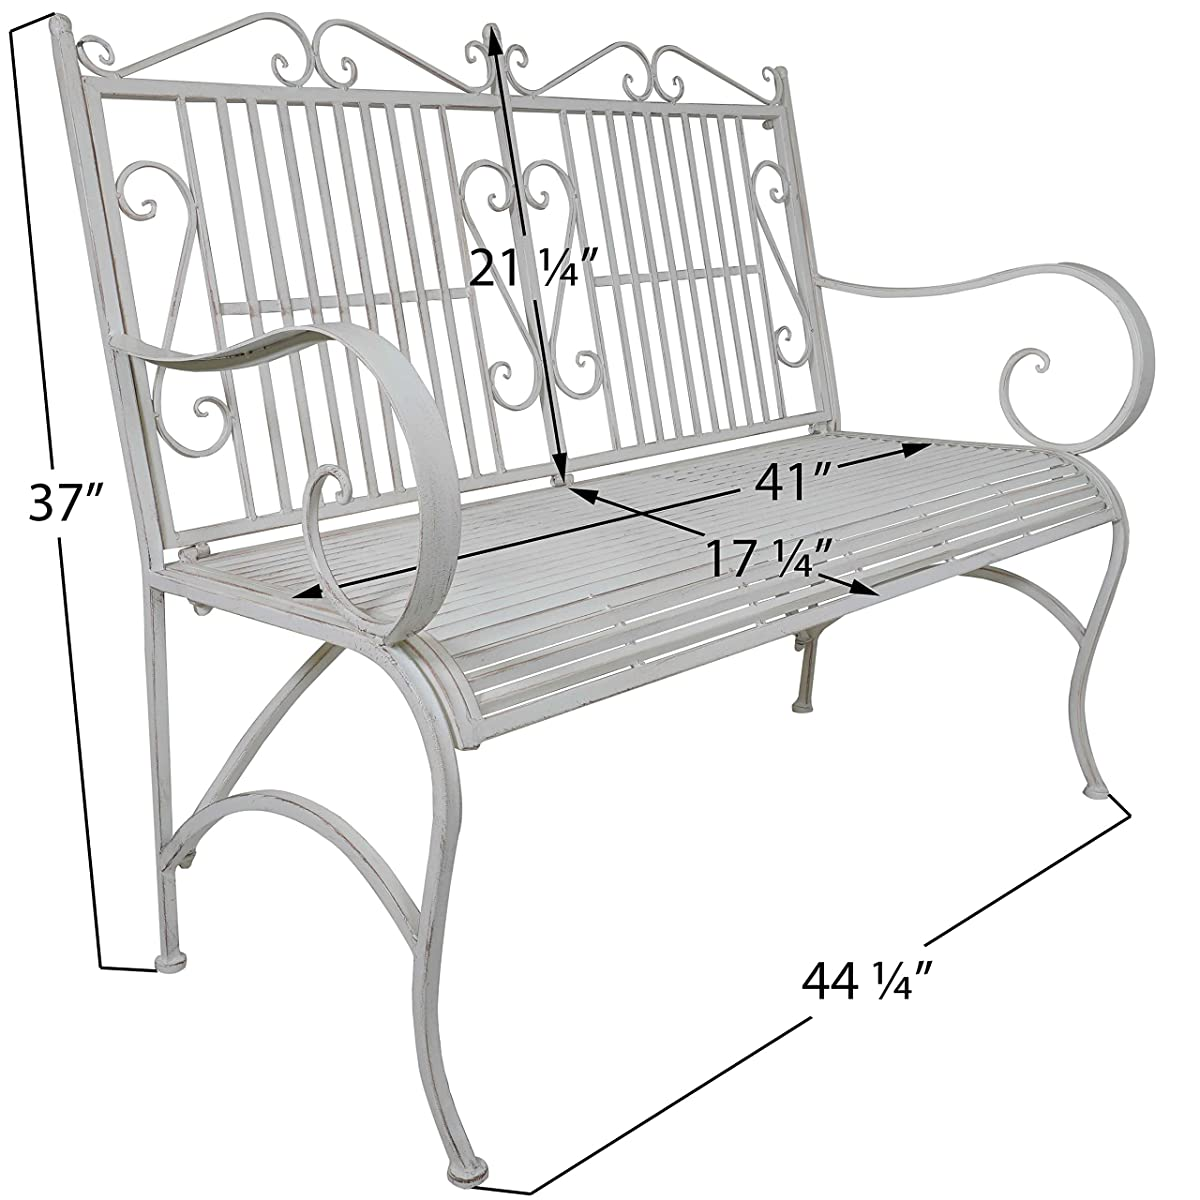 Titan Outdoor Antique White Metal Bench Chair Porch Patio Garden Deck Decor